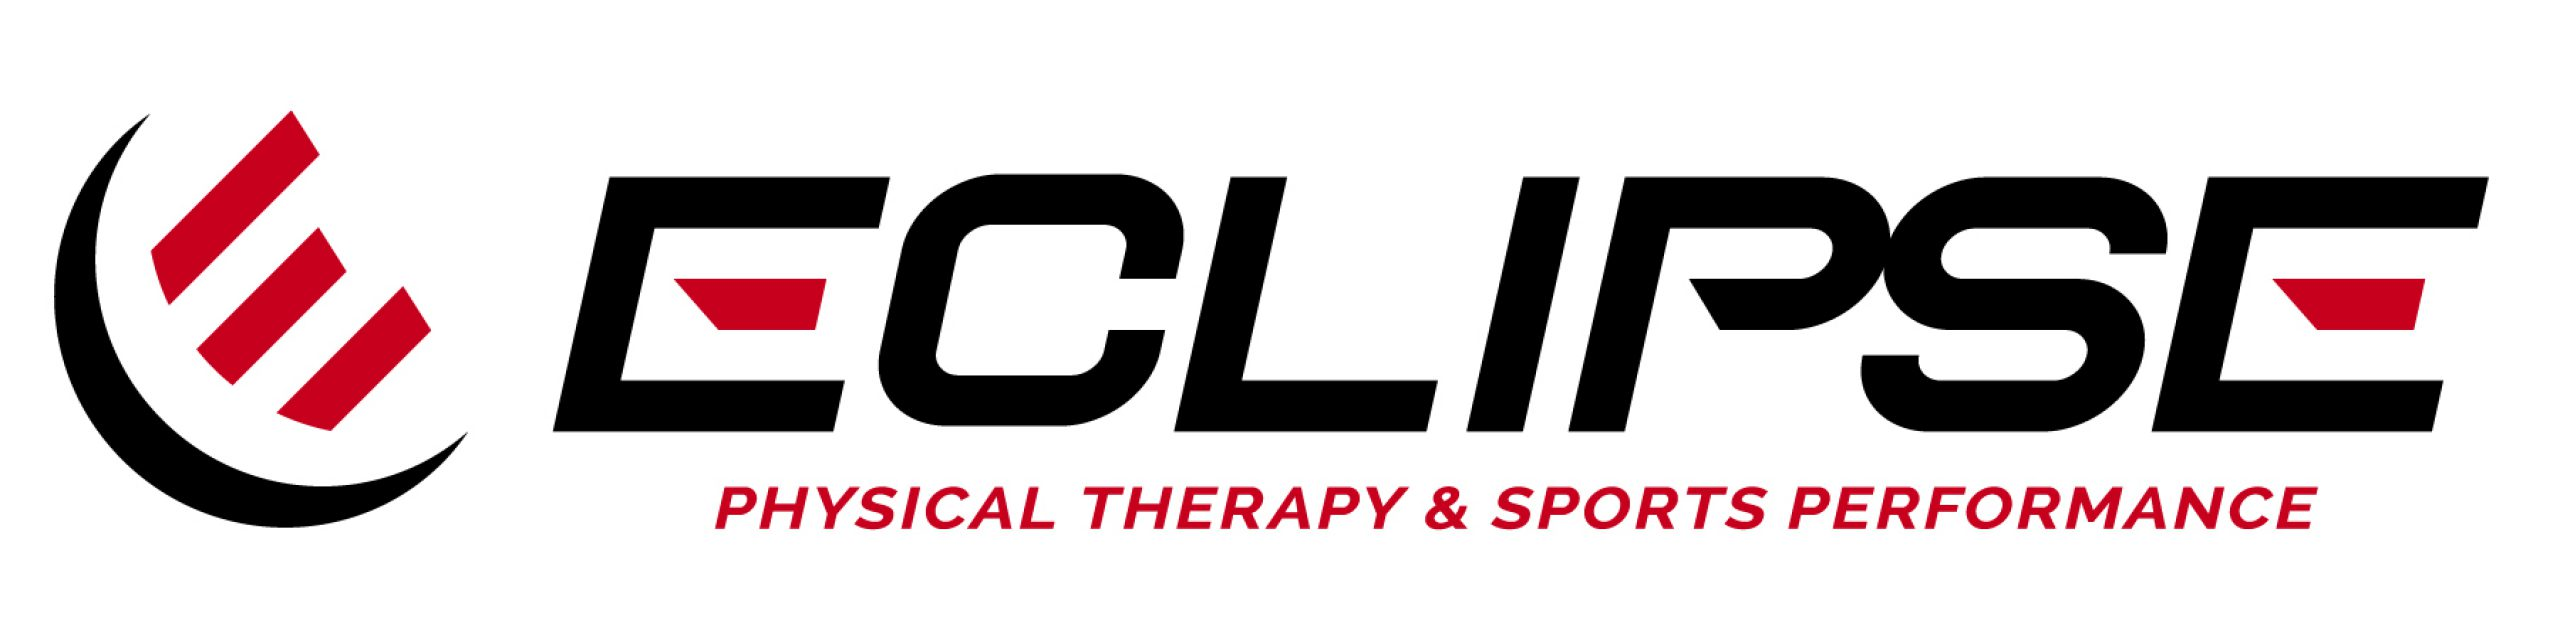 Welcome to Eclipse Physical Therapy!